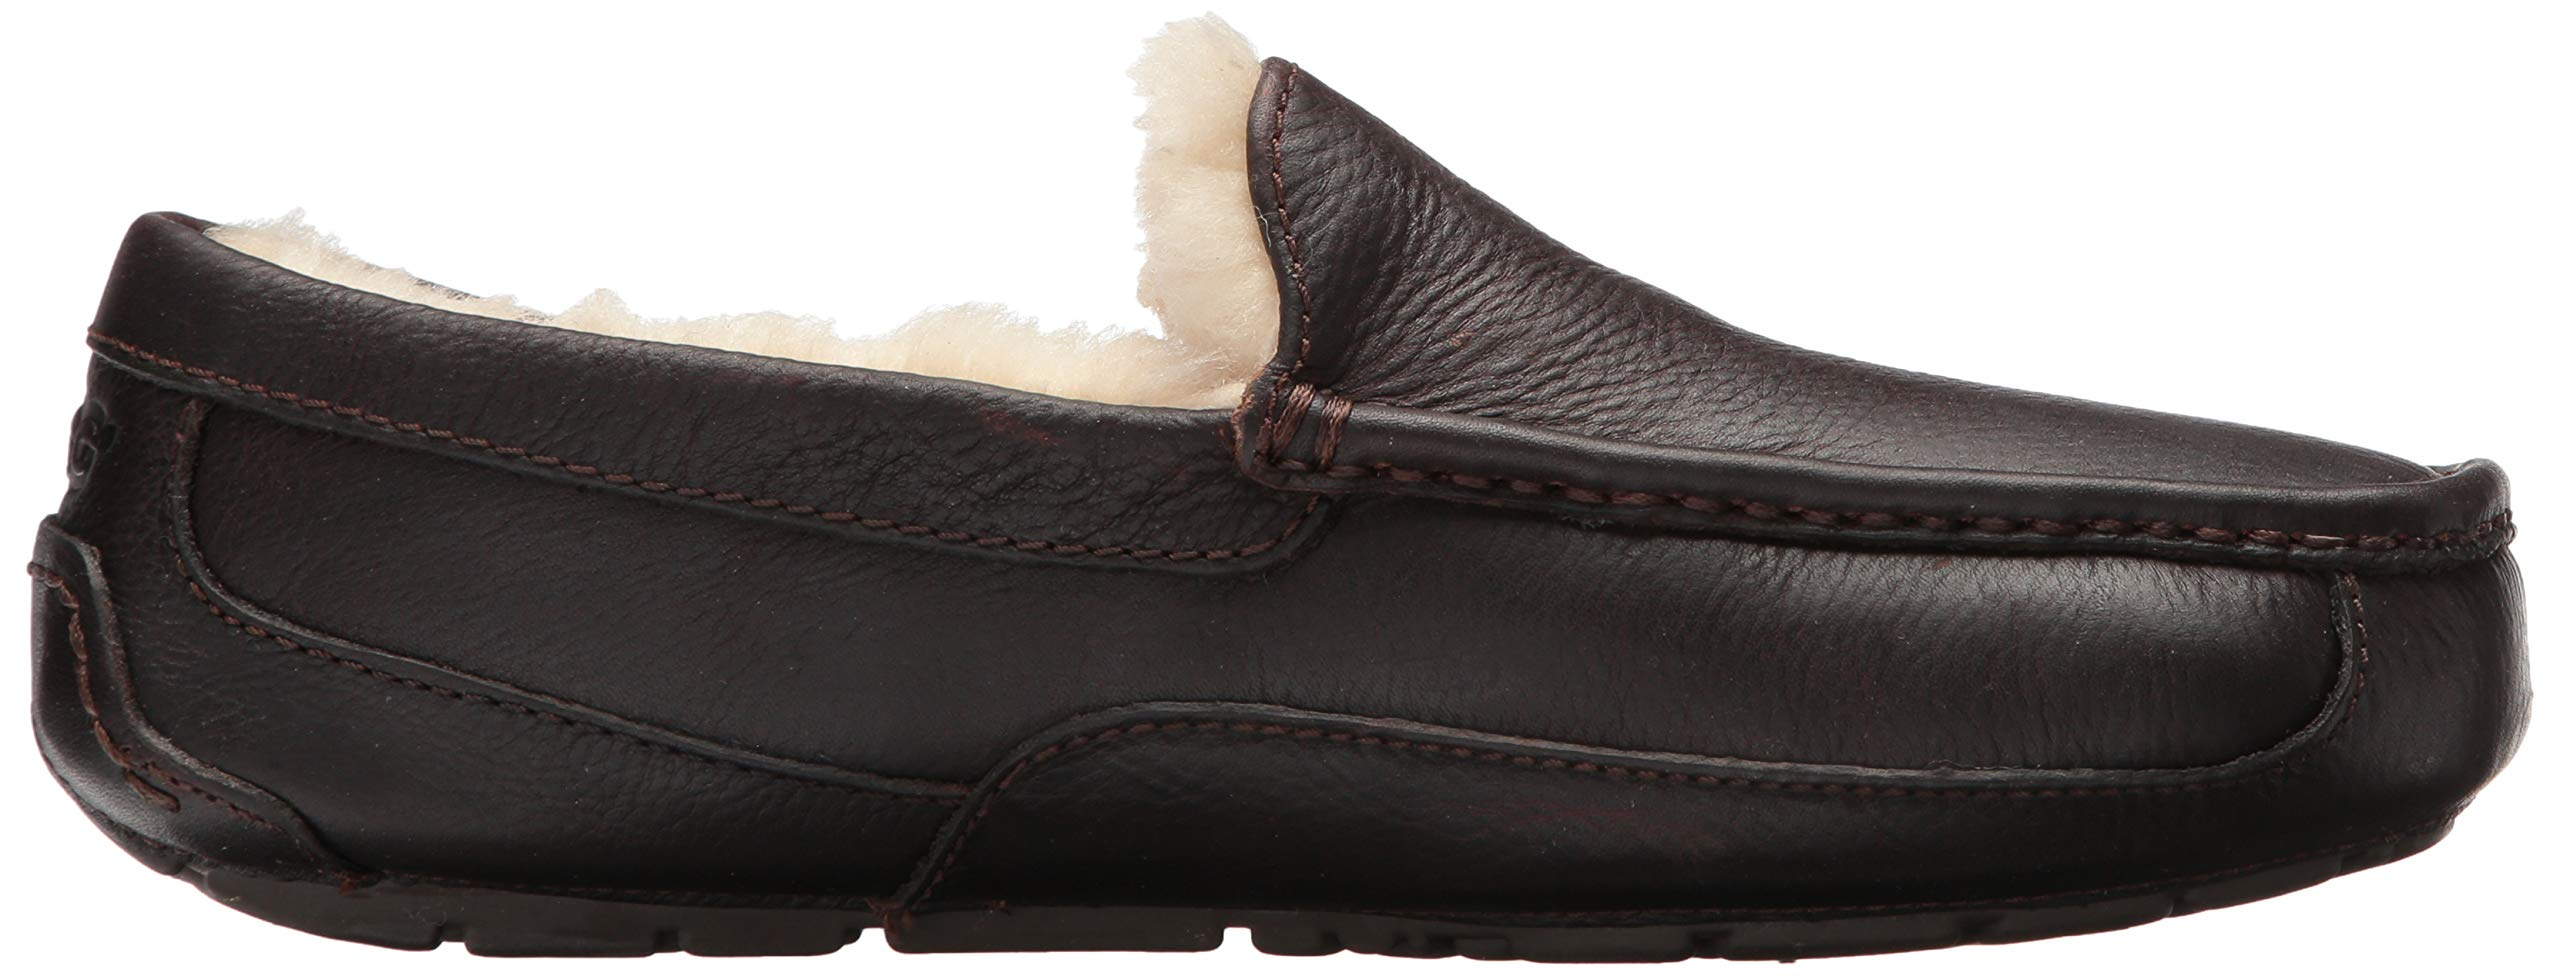 UGG Men's Ascot Slipper, China Tea Leather, 15 M US by UGG (Image #8)